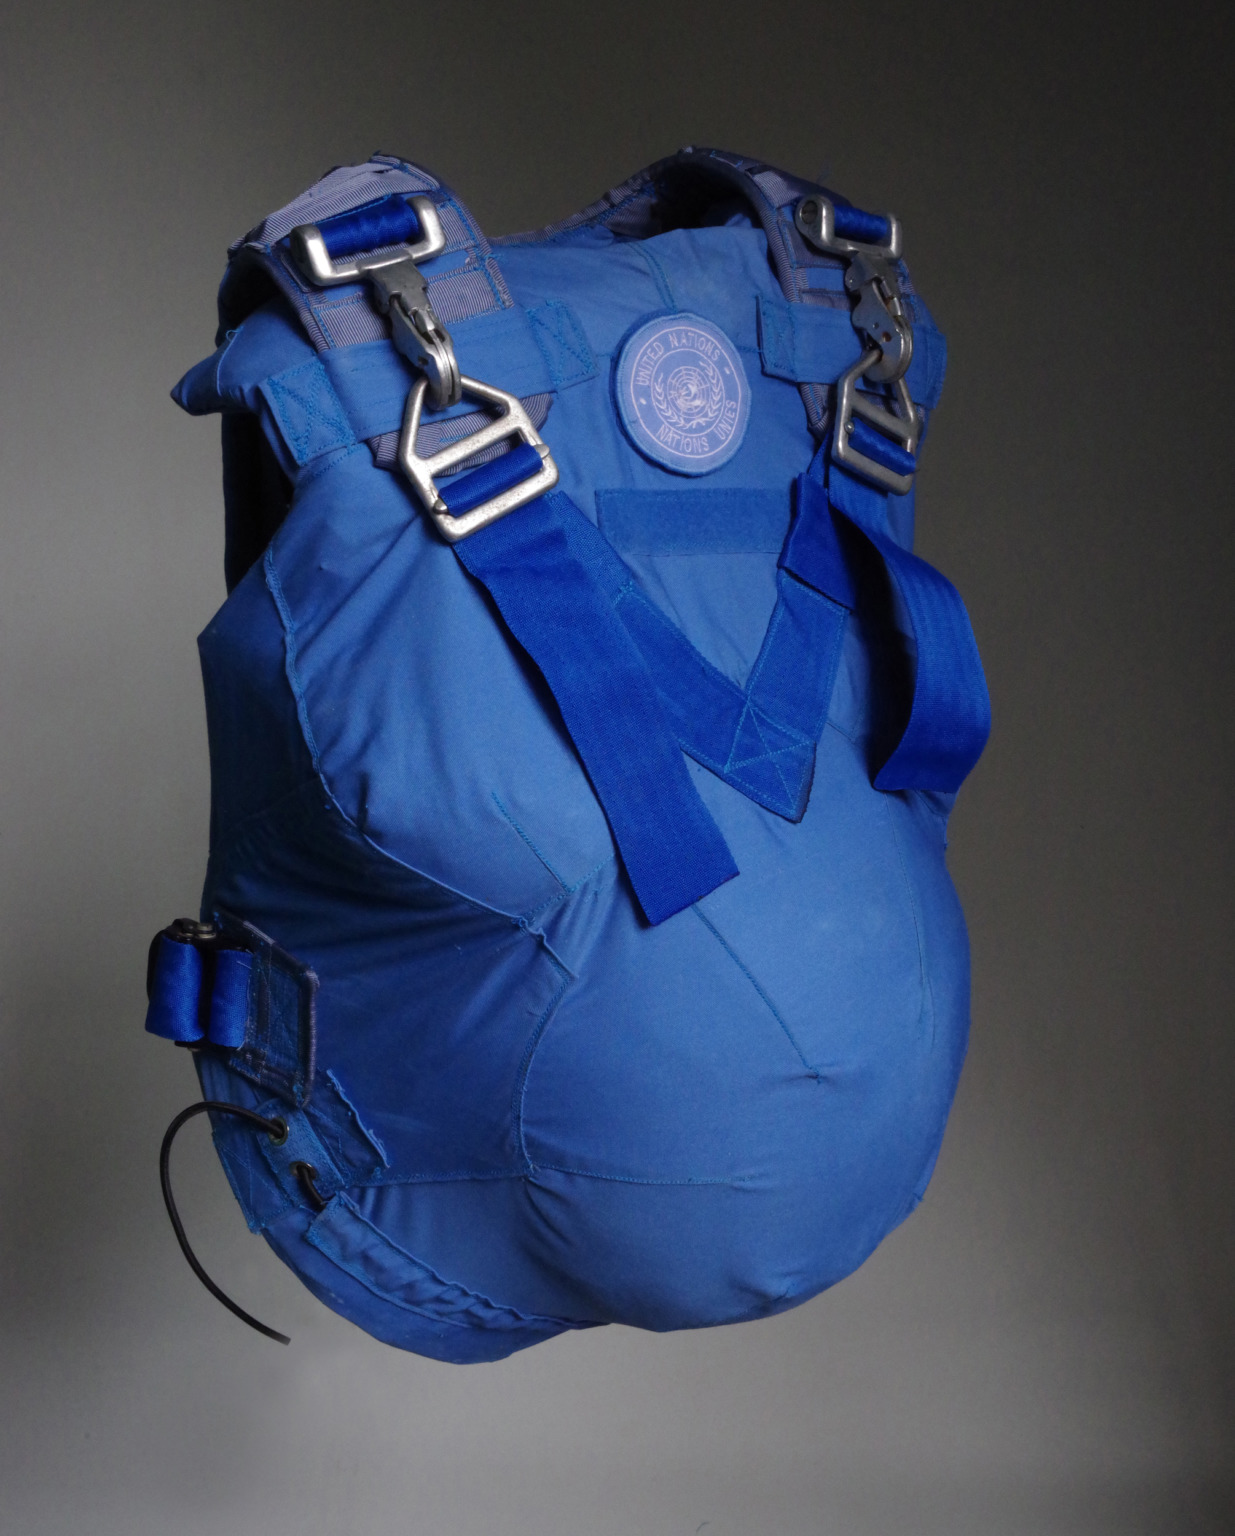 A blue fabric covered sculpture resembling a sleeveless jacket with space for a pregnant belly, with shoulder straps and metal buckles. On the chest is a United Nations badge